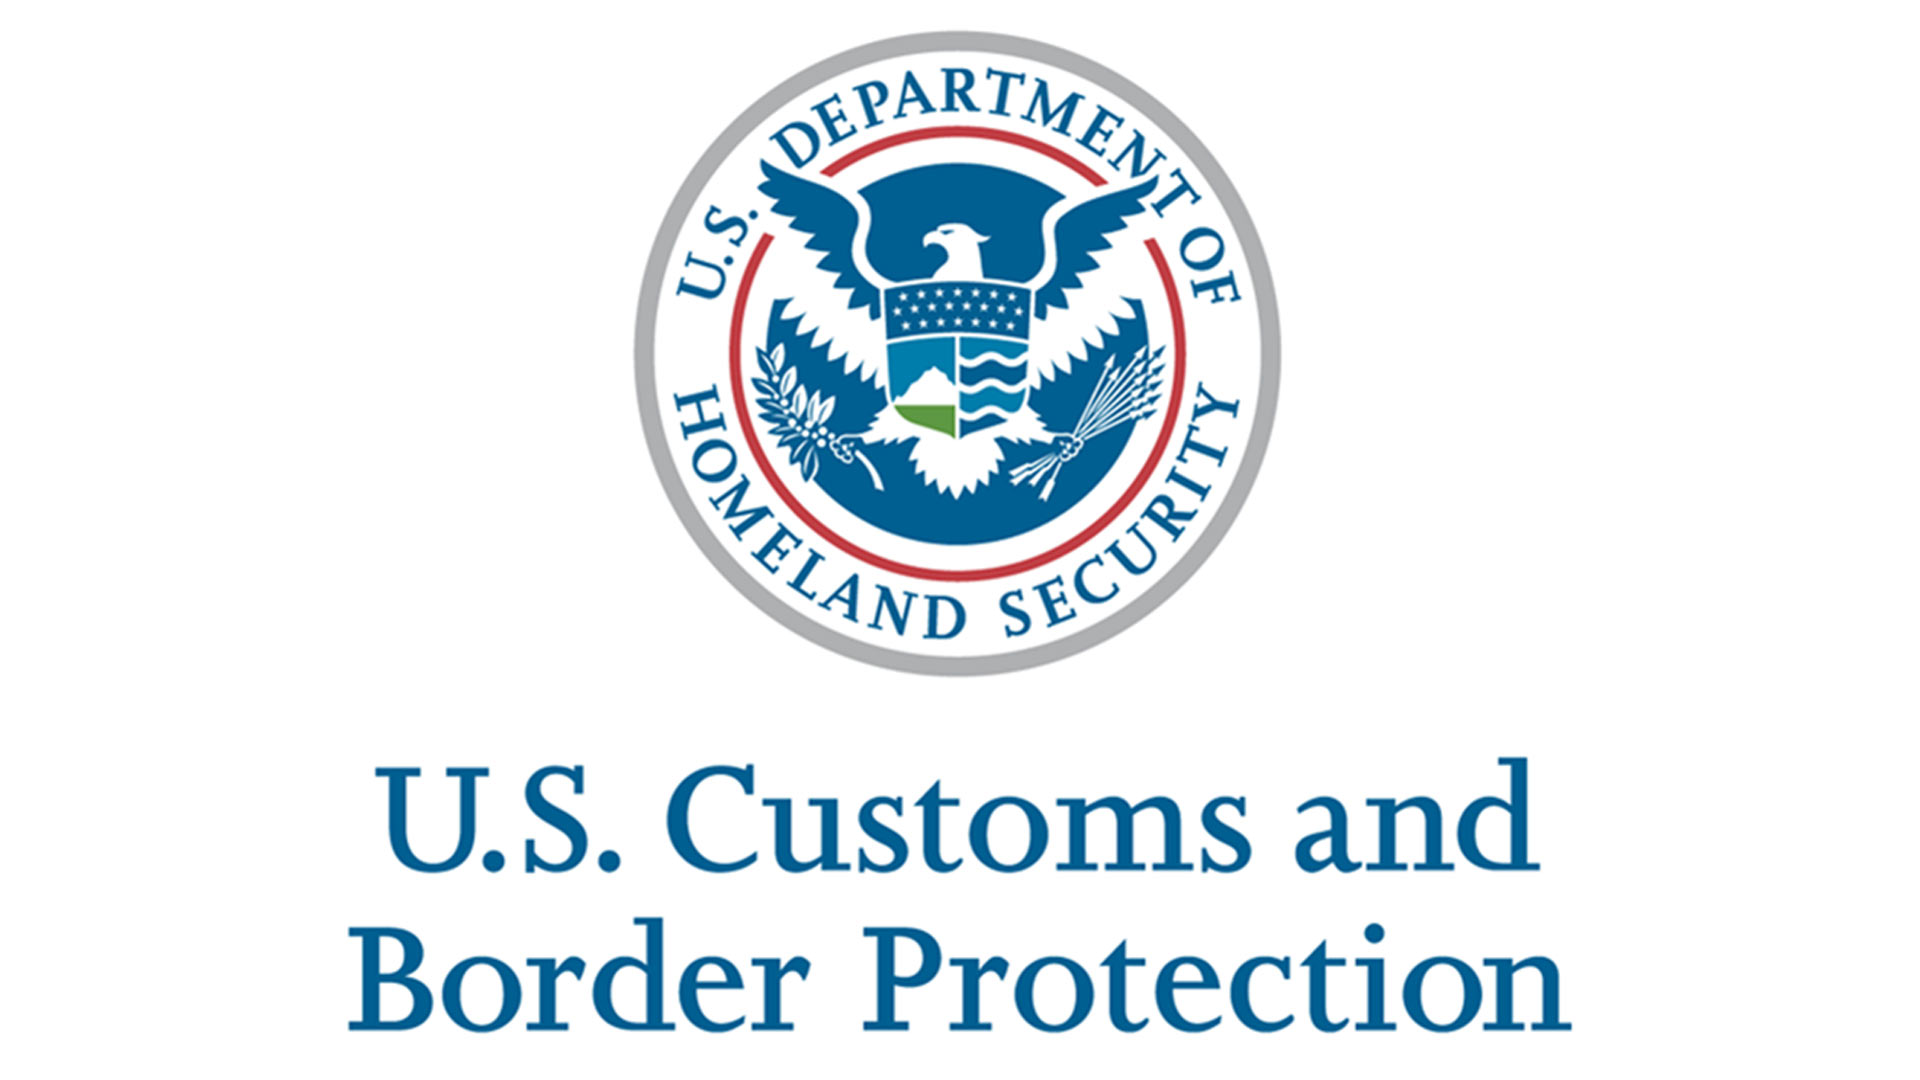 CBP Agents at a 'Breaking Point,' Union Official Says - AZPM